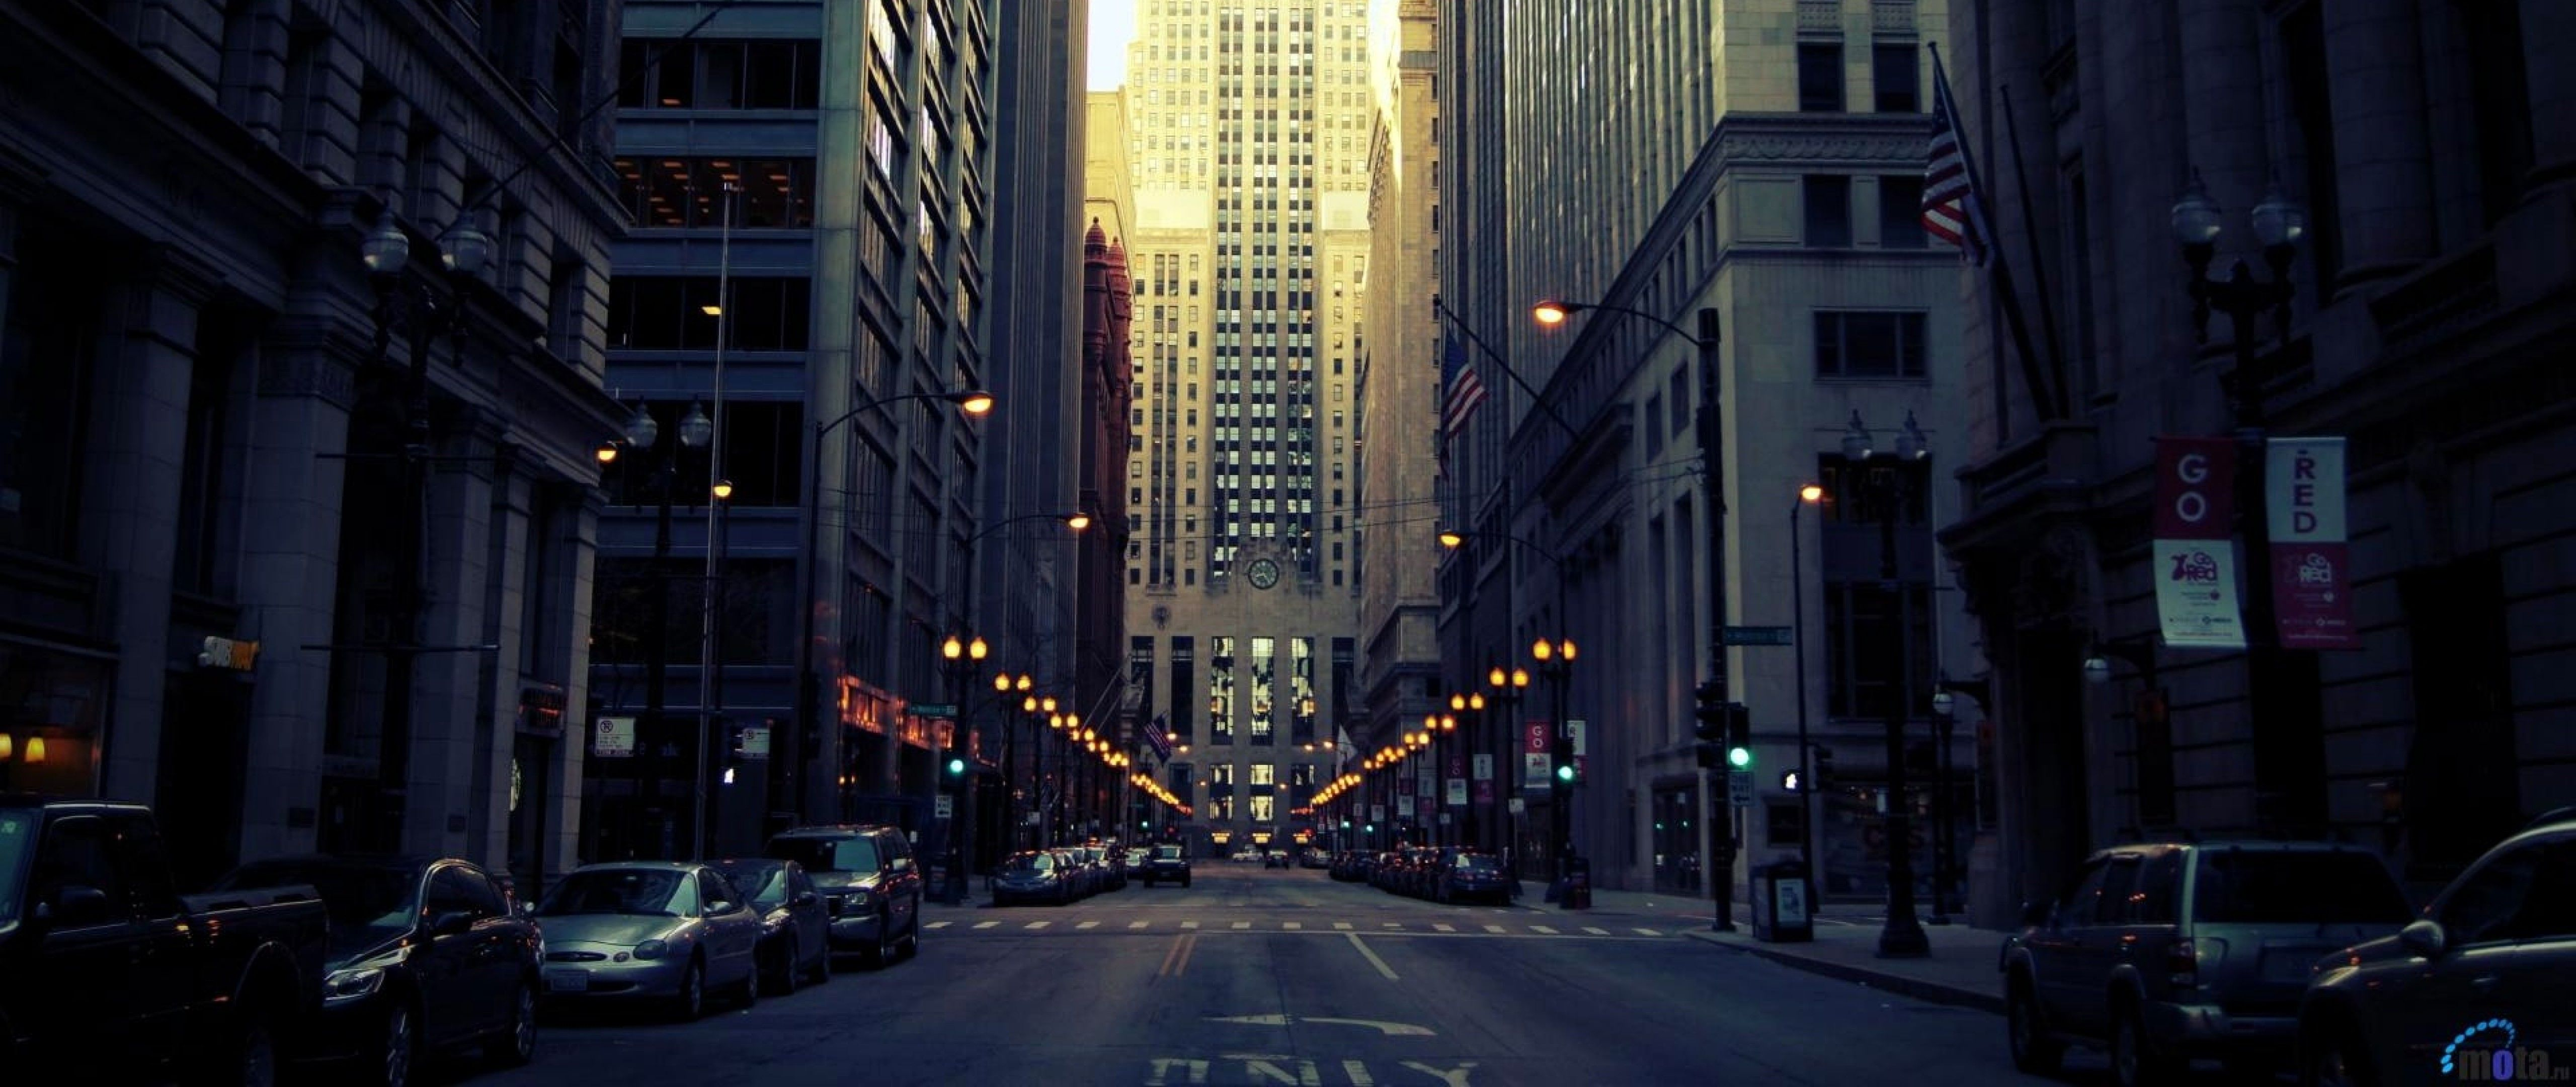 Ultra Wide Wallpapers Hd Resolution Nature Wallpaper Chicago Wallpaper Chicago Buildings City Wallpaper